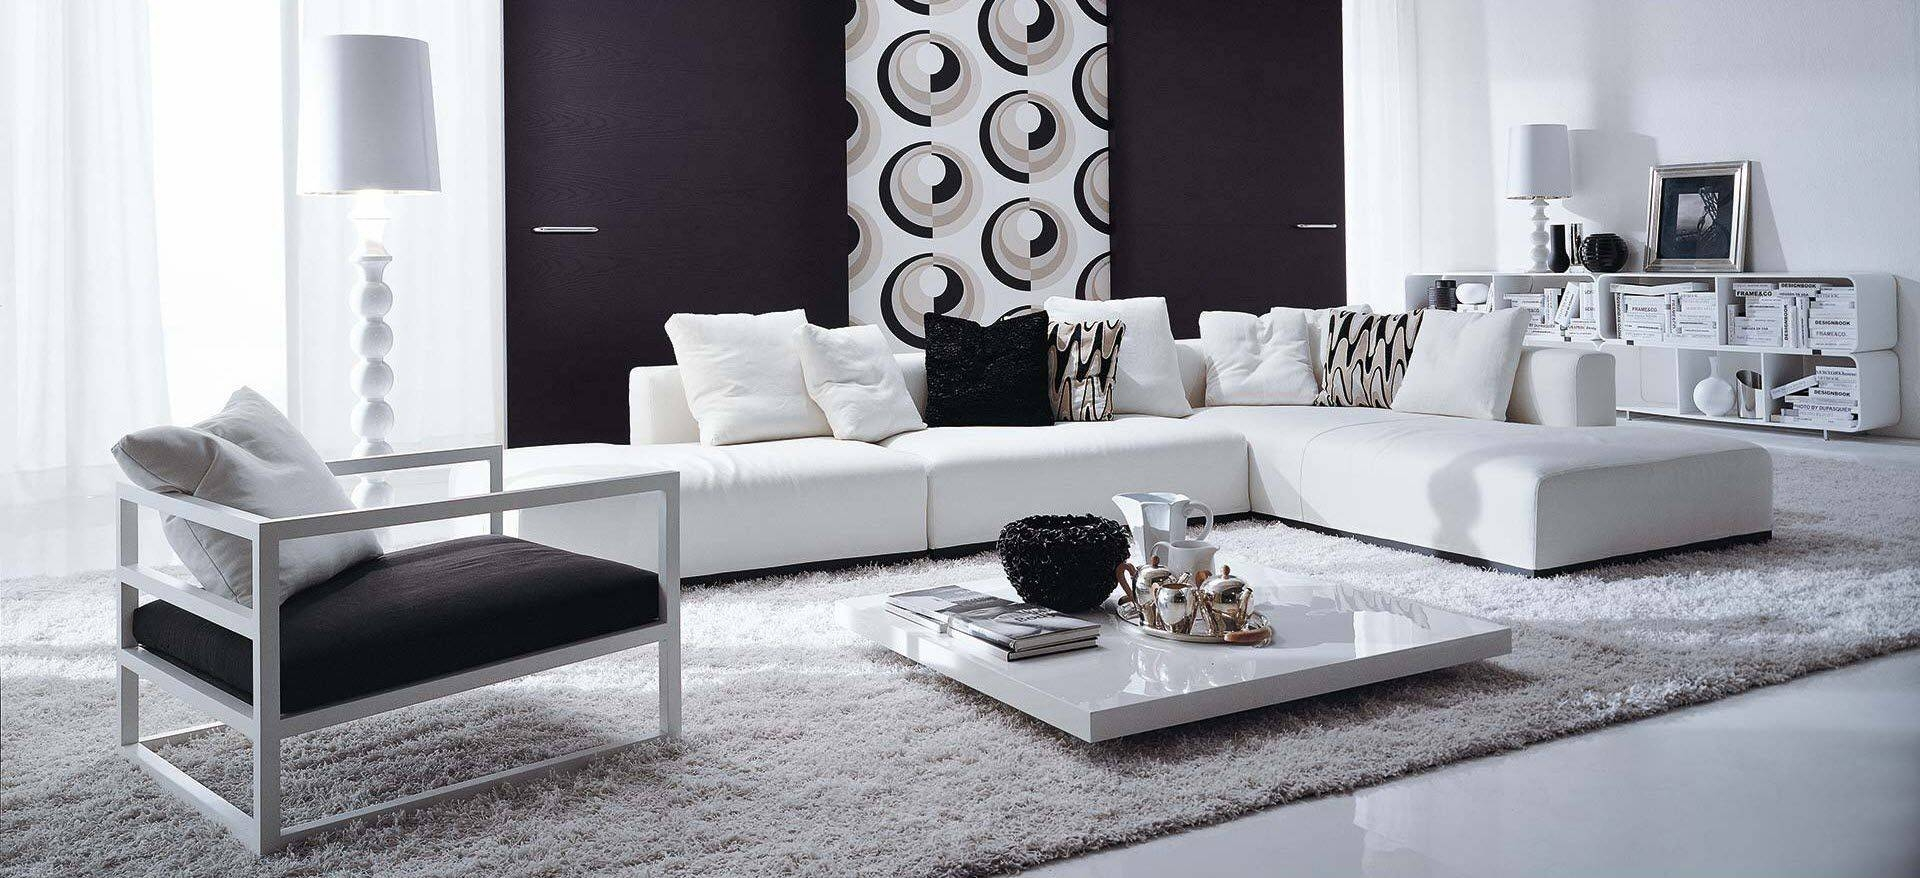 Modular Sofa / Contemporary / Fabric / Leather - Attico - Frigerio pertaining to Contemporary Fabric Sofas (Image 20 of 30)